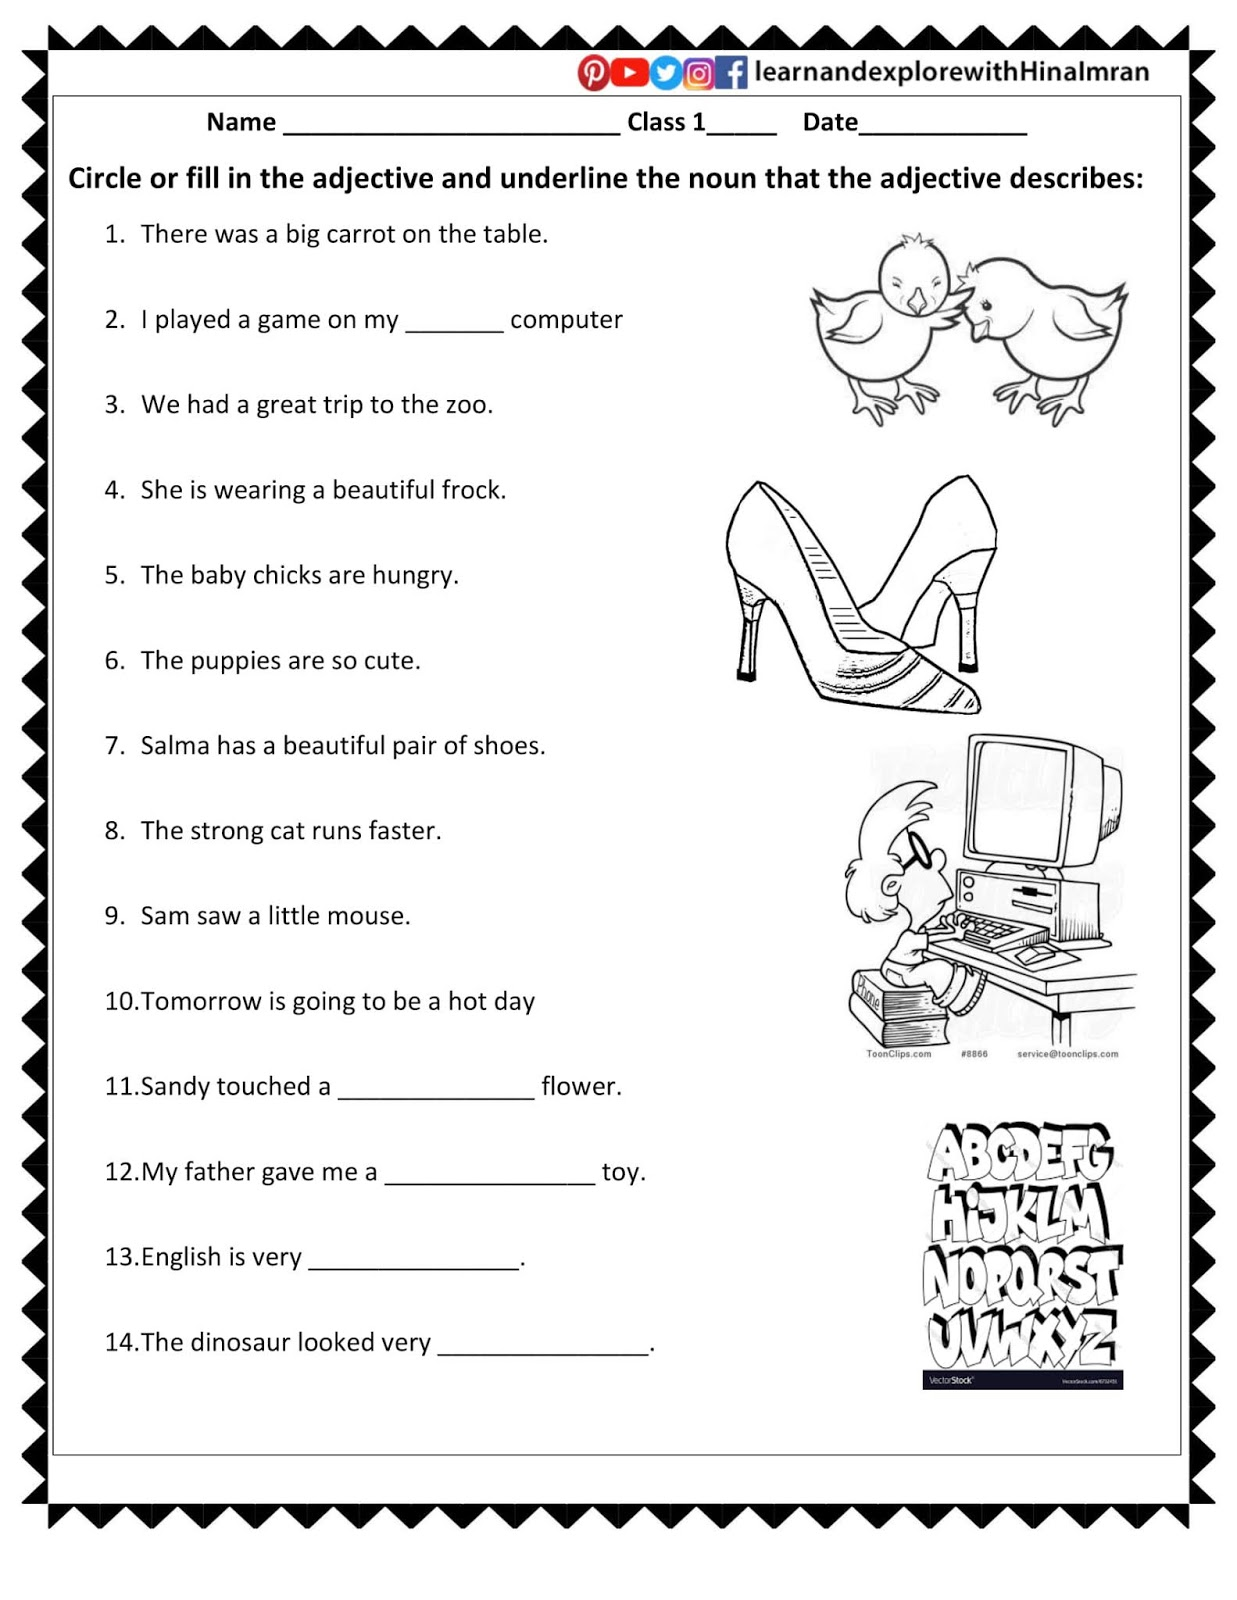 small resolution of Learn and Explore 360 - Hina Imran: Grade 1 Worksheets